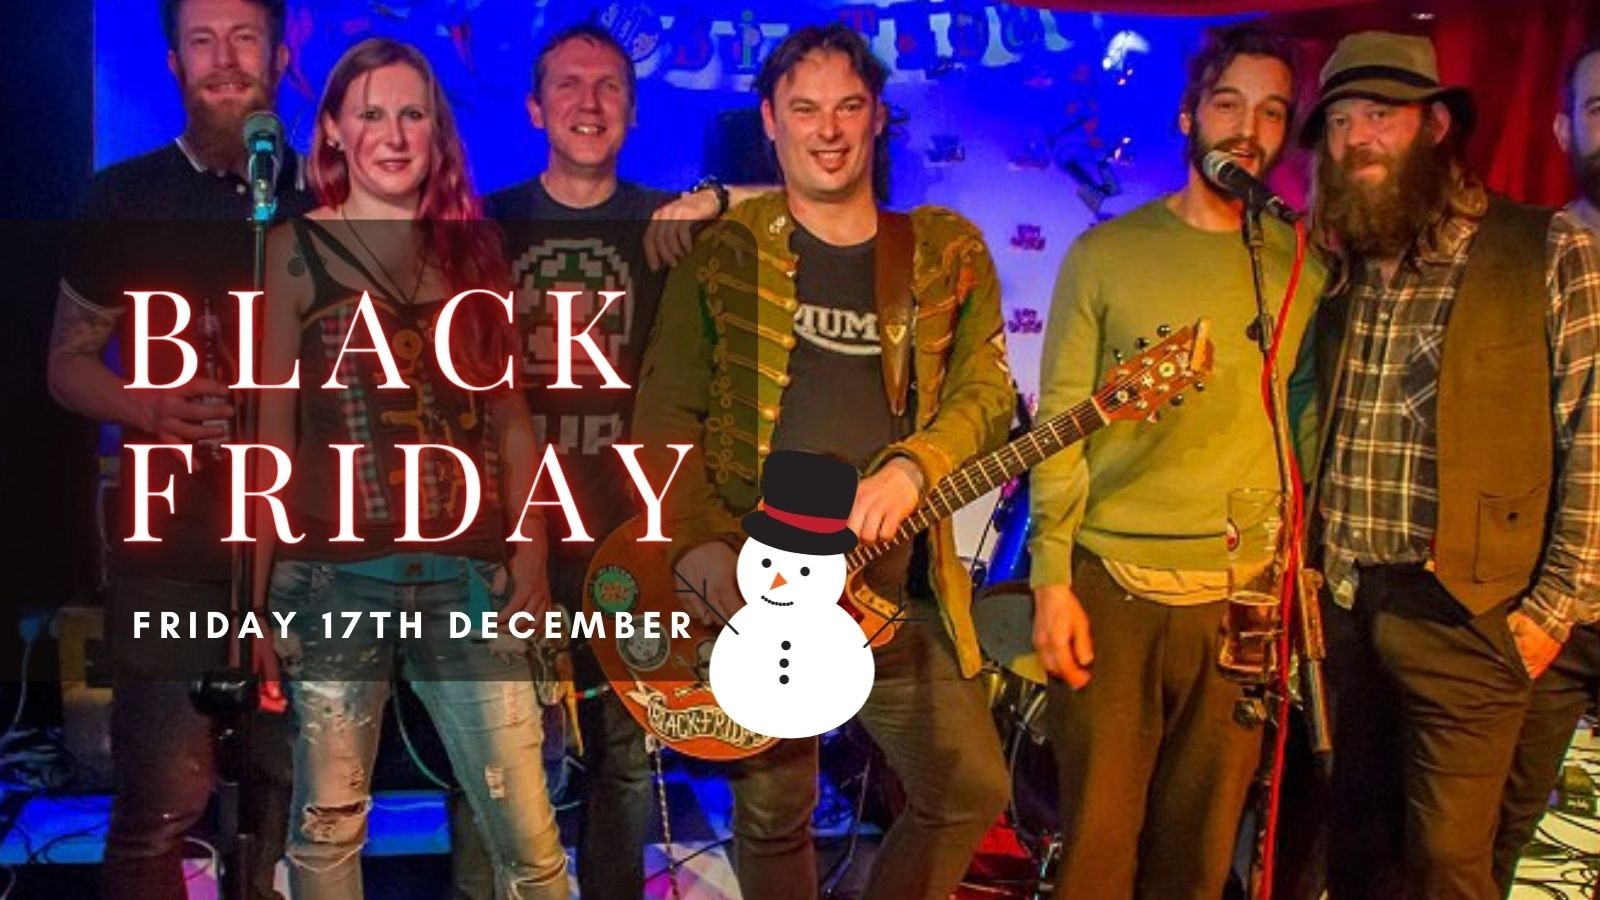 BLACK FRIDAY | Plymouth, Annabel's Cabaret & Discotheque